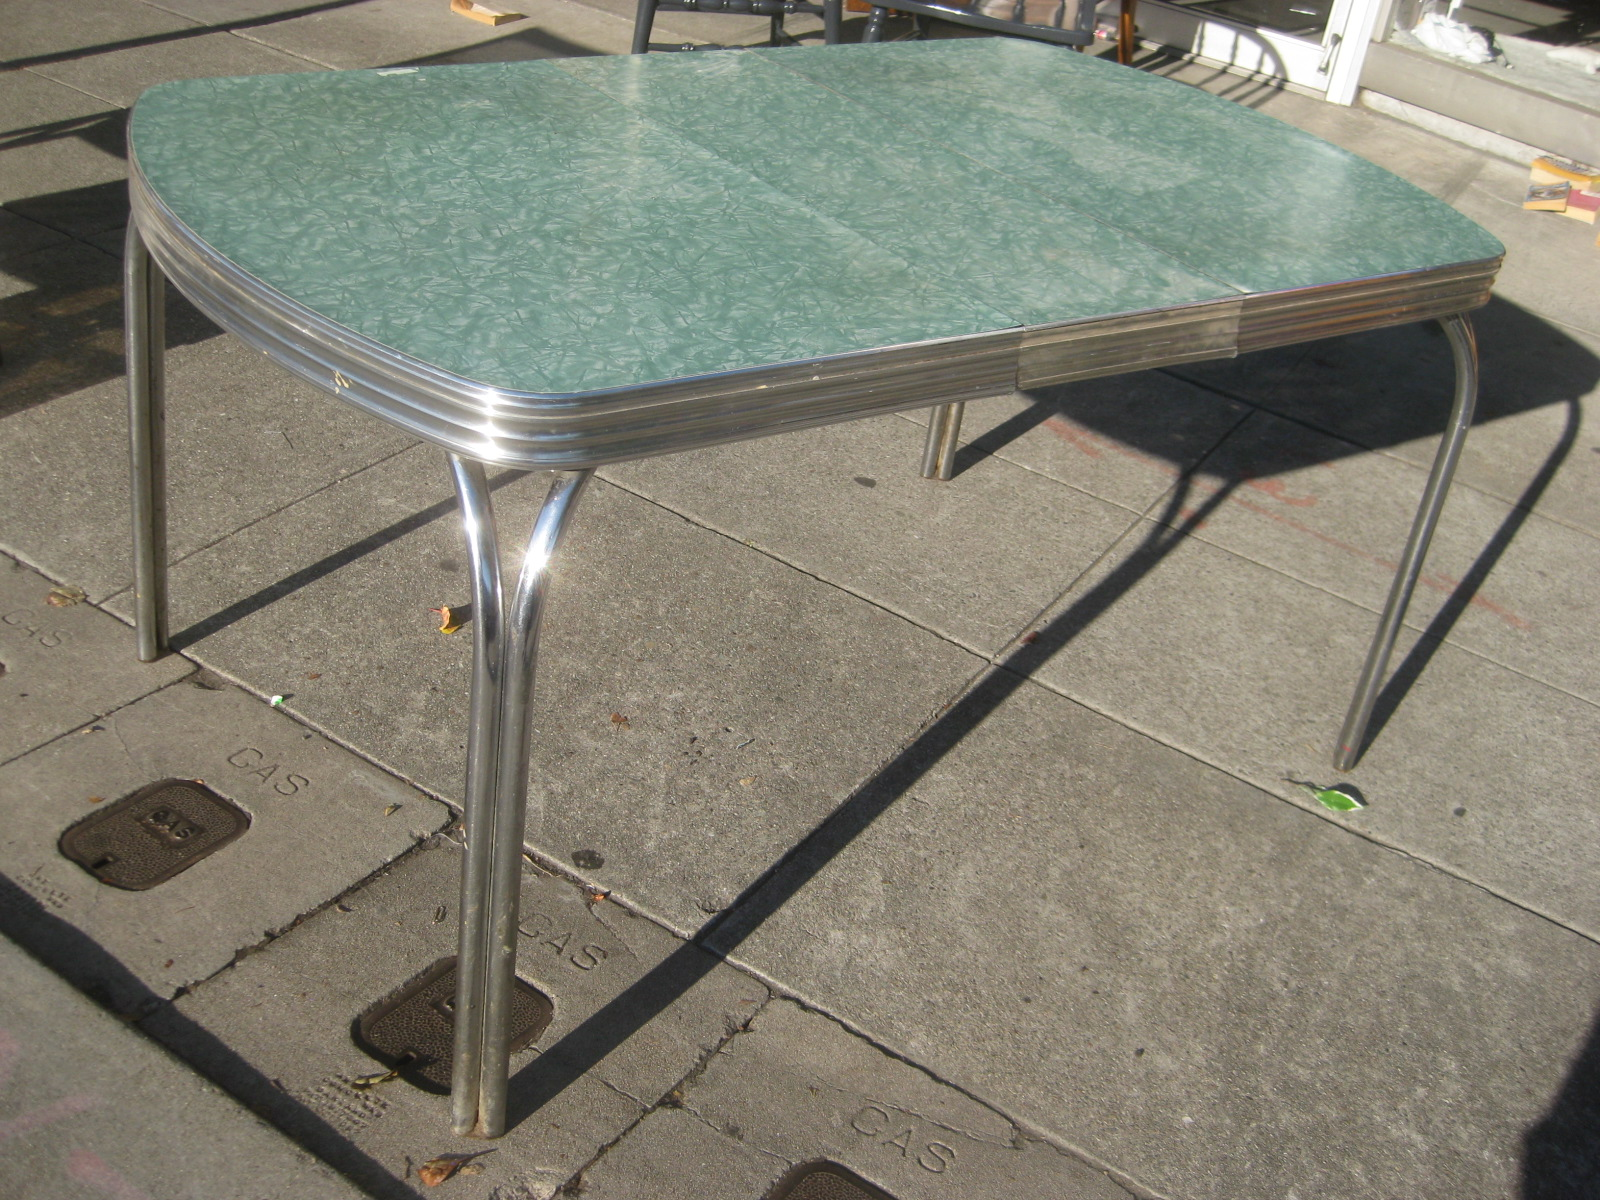 50s Table And Chairs Uhuru Furniture And Collectibles Sold 3950s Chrome